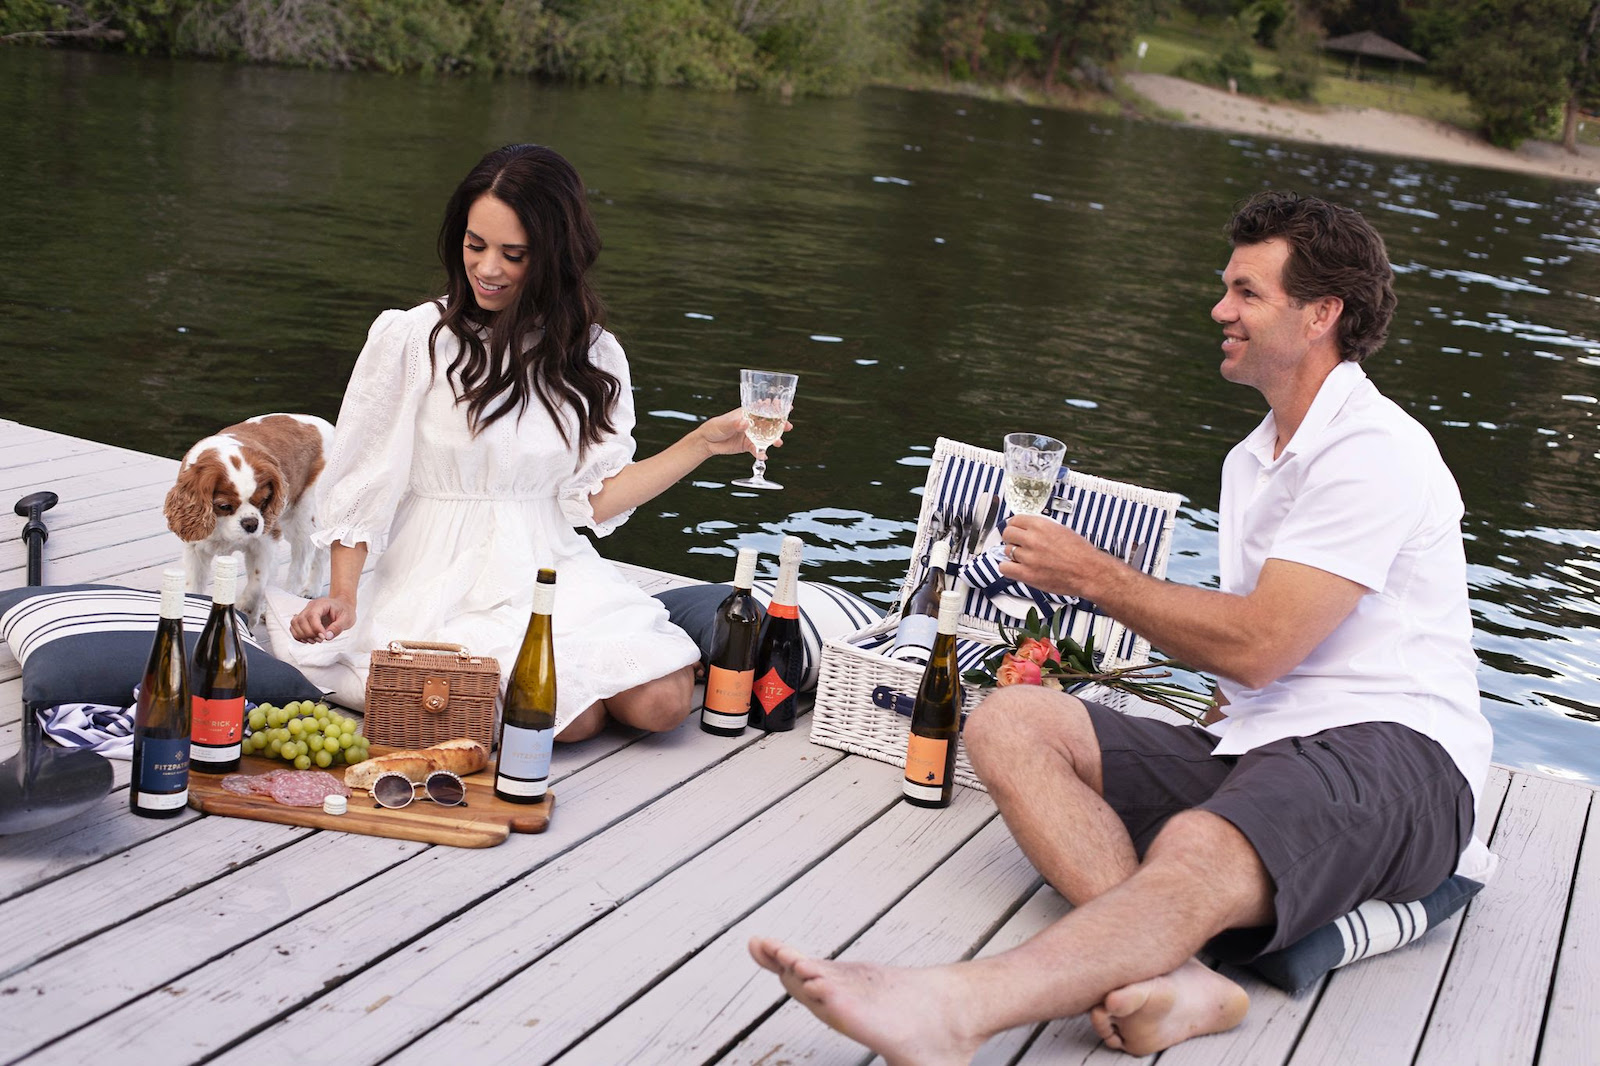 Celebrate Bc Day With Sparkling Wine From Fitzpatrick Family Vineyards photo